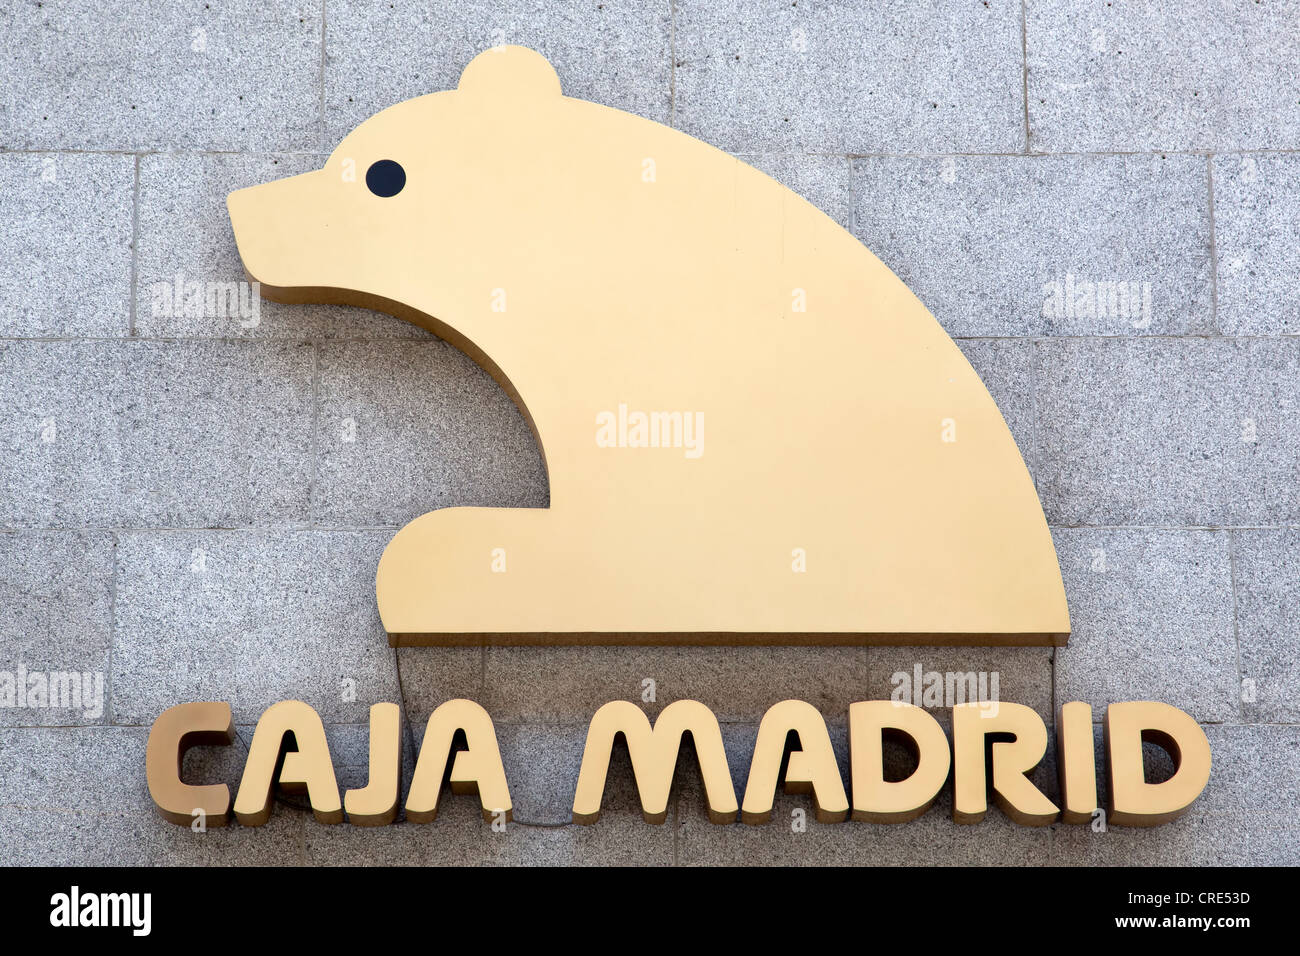 Logo and logotype of the bank Caja Madrid in Madrid, Spain, Europe - Stock Image